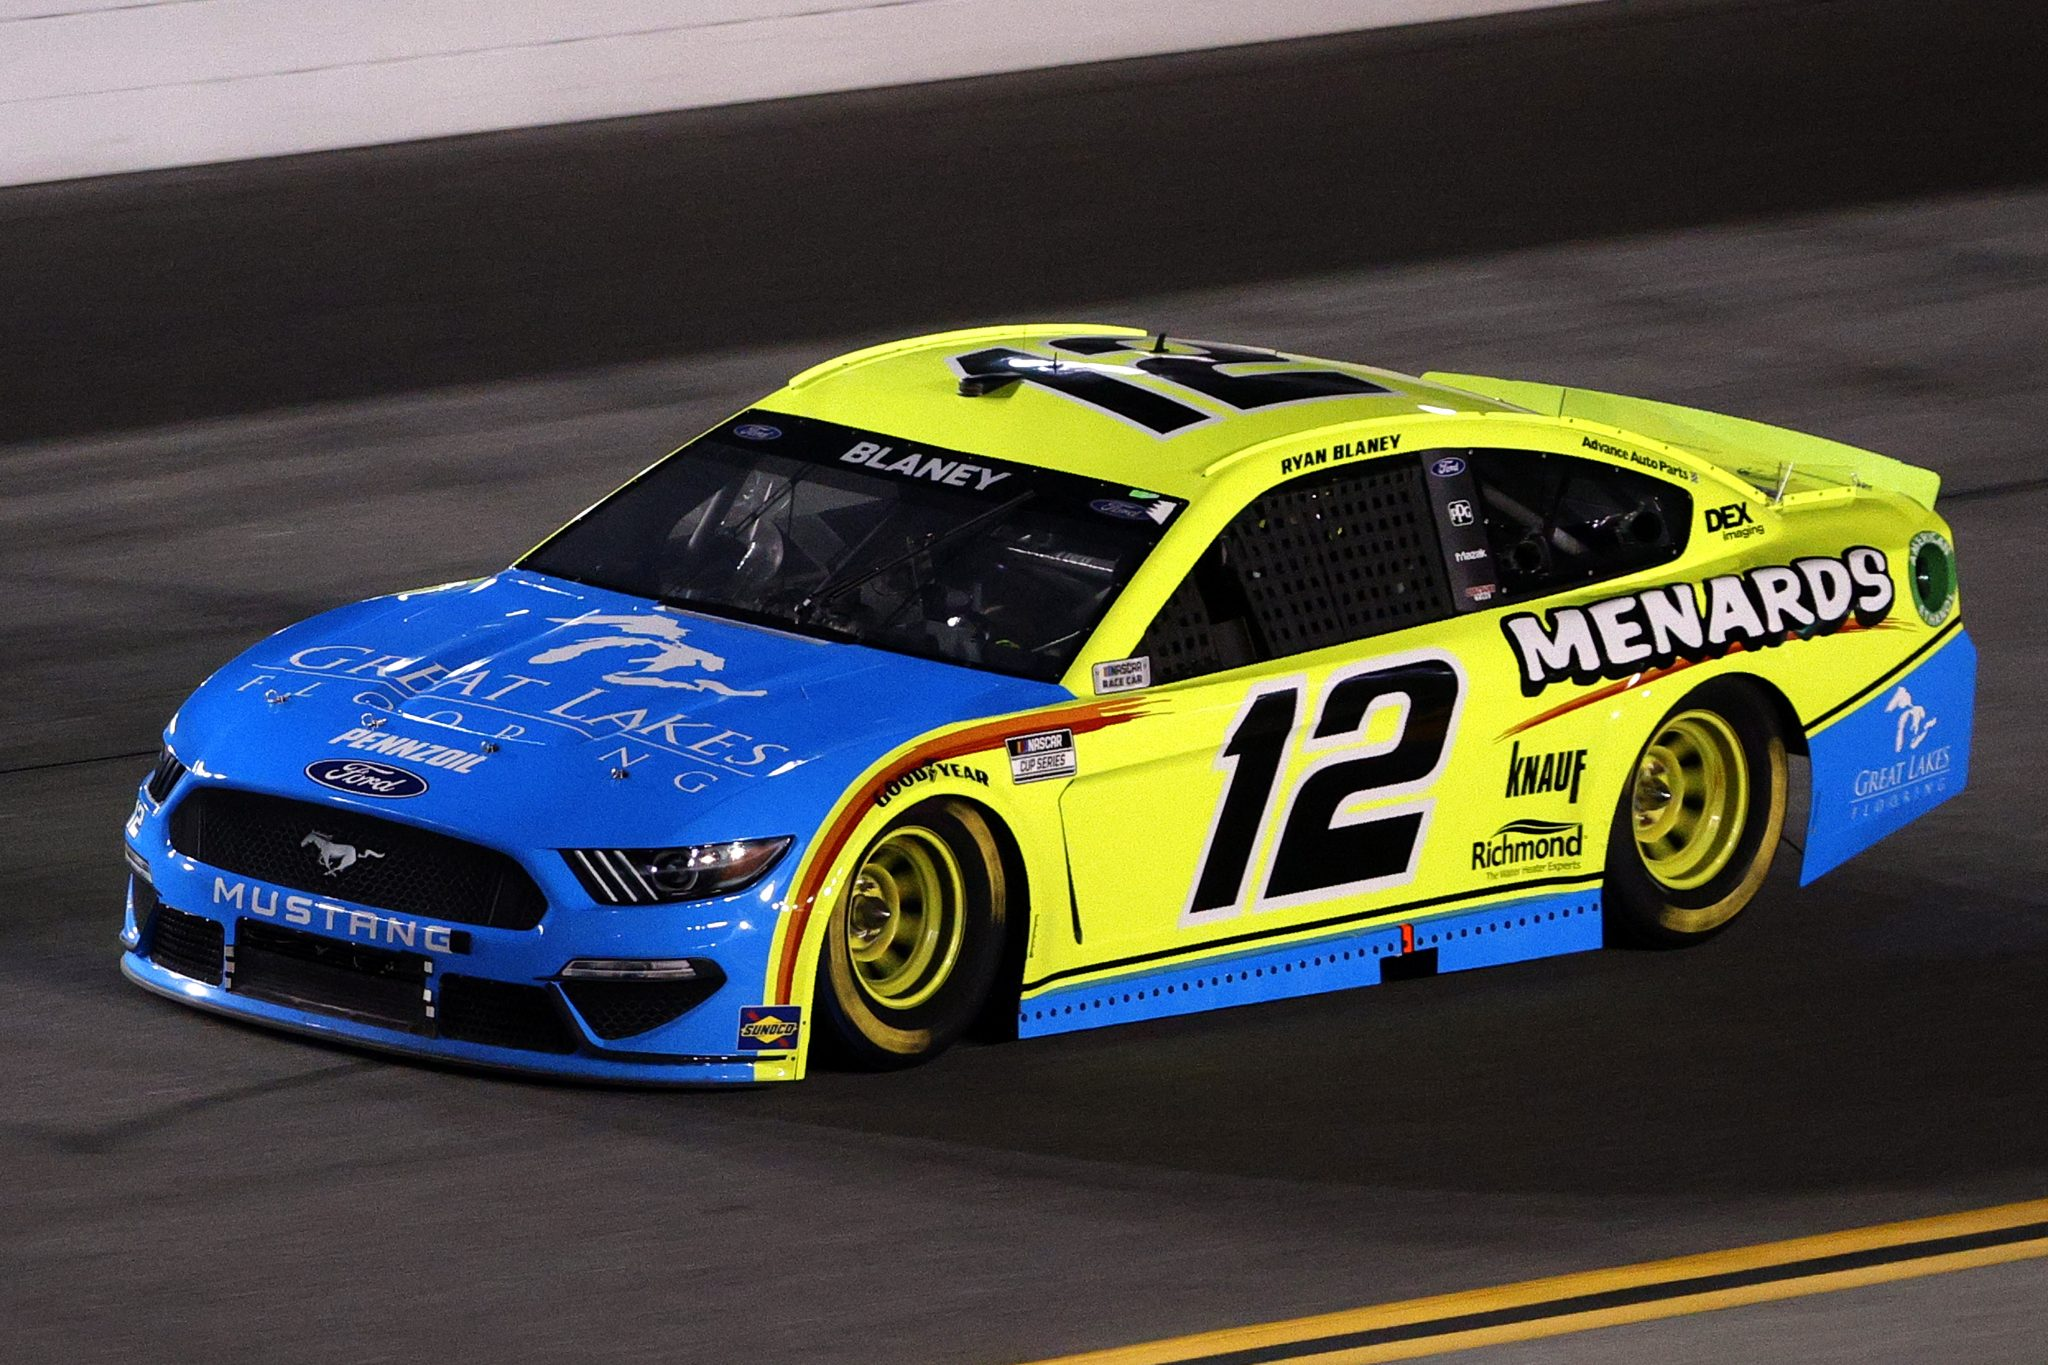 DAYTONA BEACH, FLORIDA - FEBRUARY 09: Ryan Blaney, driver of the #12 Menards/Great Lakes Flooring Ford, drives during the NASCAR Cup Series Busch Clash at Daytona at Daytona International Speedway on February 09, 2021 in Daytona Beach, Florida. (Photo by Chris Graythen/Getty Images) | Getty Images